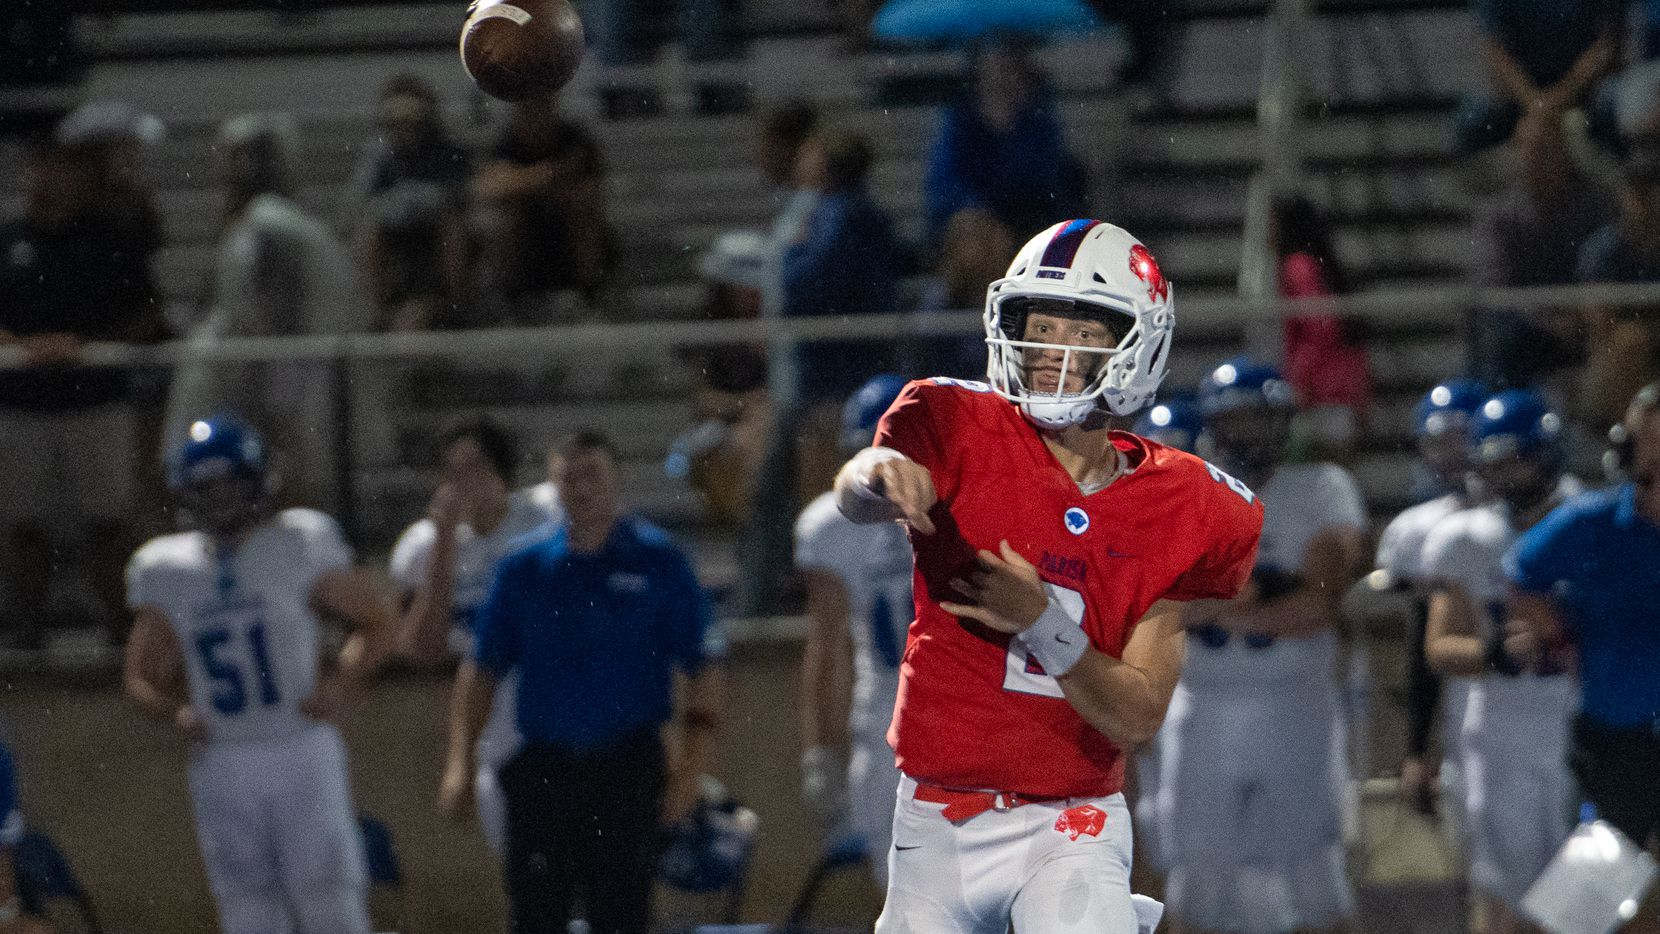 Parish Episcopal quarterback Preston Stone is one of the top-rated quarterbacks in the country for the Class of 2021. His presence at the North Dallas school has led to an increase in attention for his teammates.